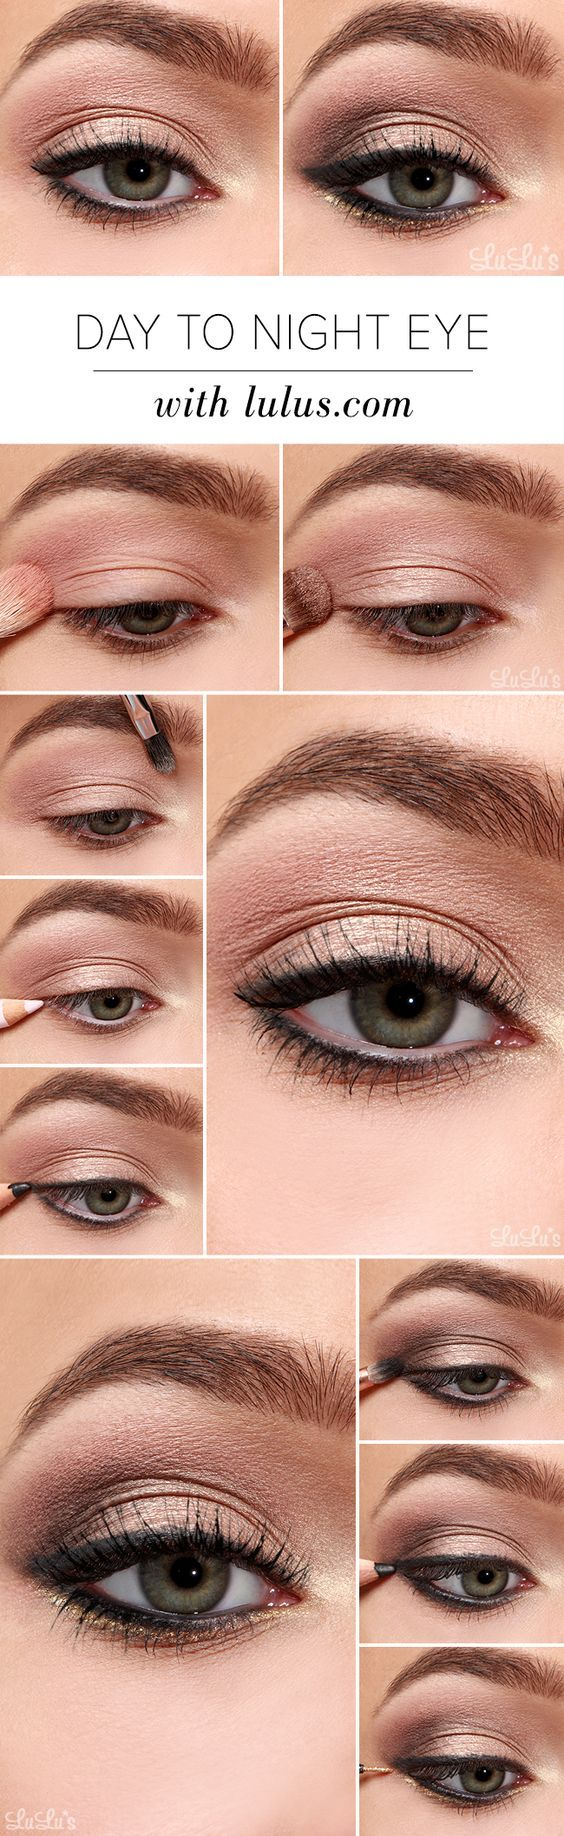 How To: Step By Step Eye Makeup Tutorials And Guides For Beginners...